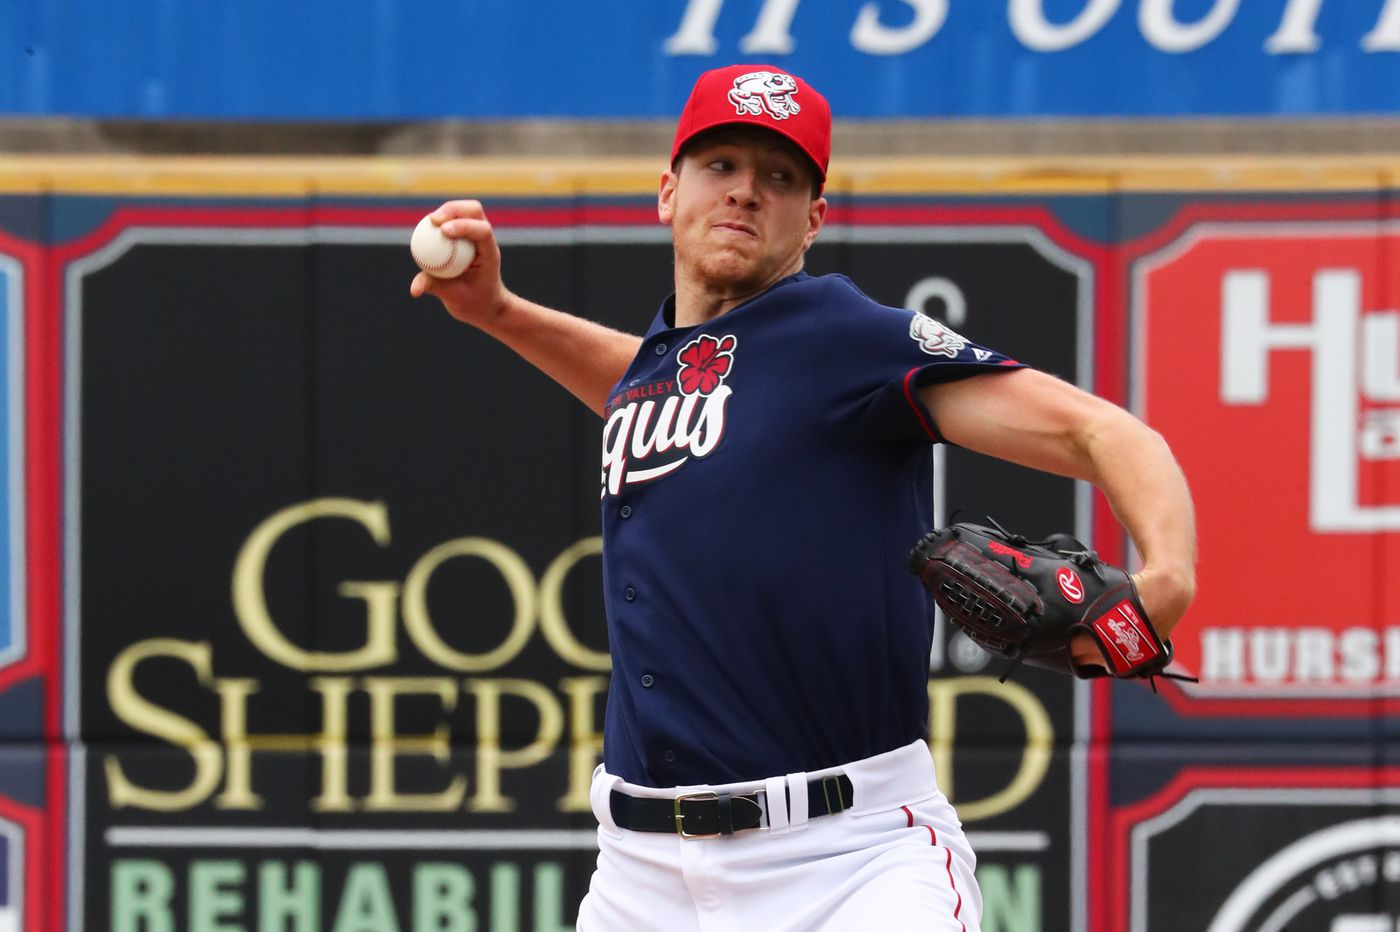 Nick Pivetta will be out of the minors and back with the Phillies soon. Just ask him. | Mike Sielski